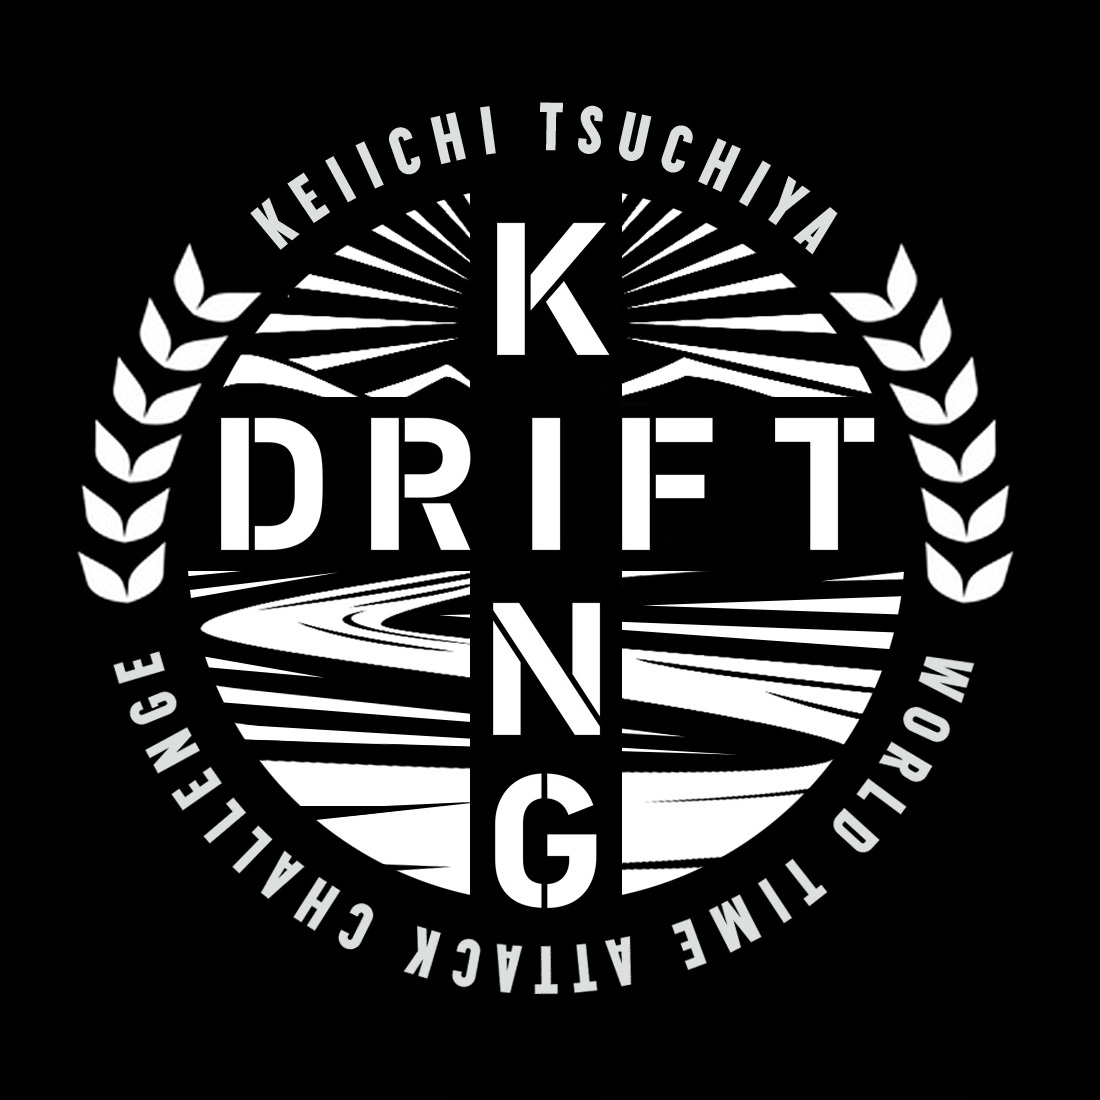 keiichi_driftking_roads_4